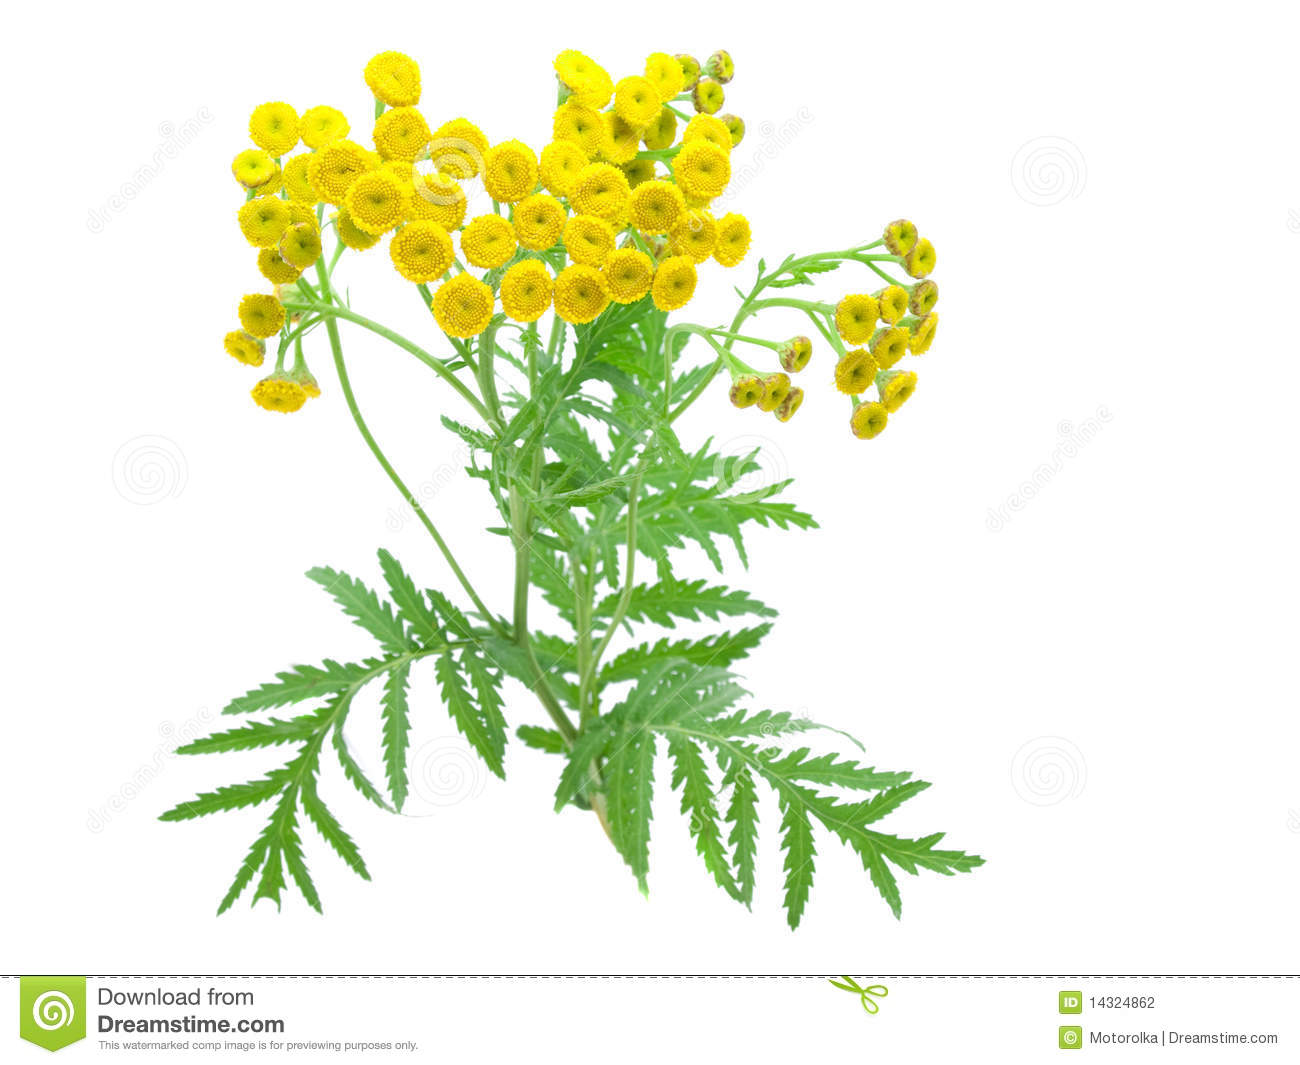 Flowers of tansy.